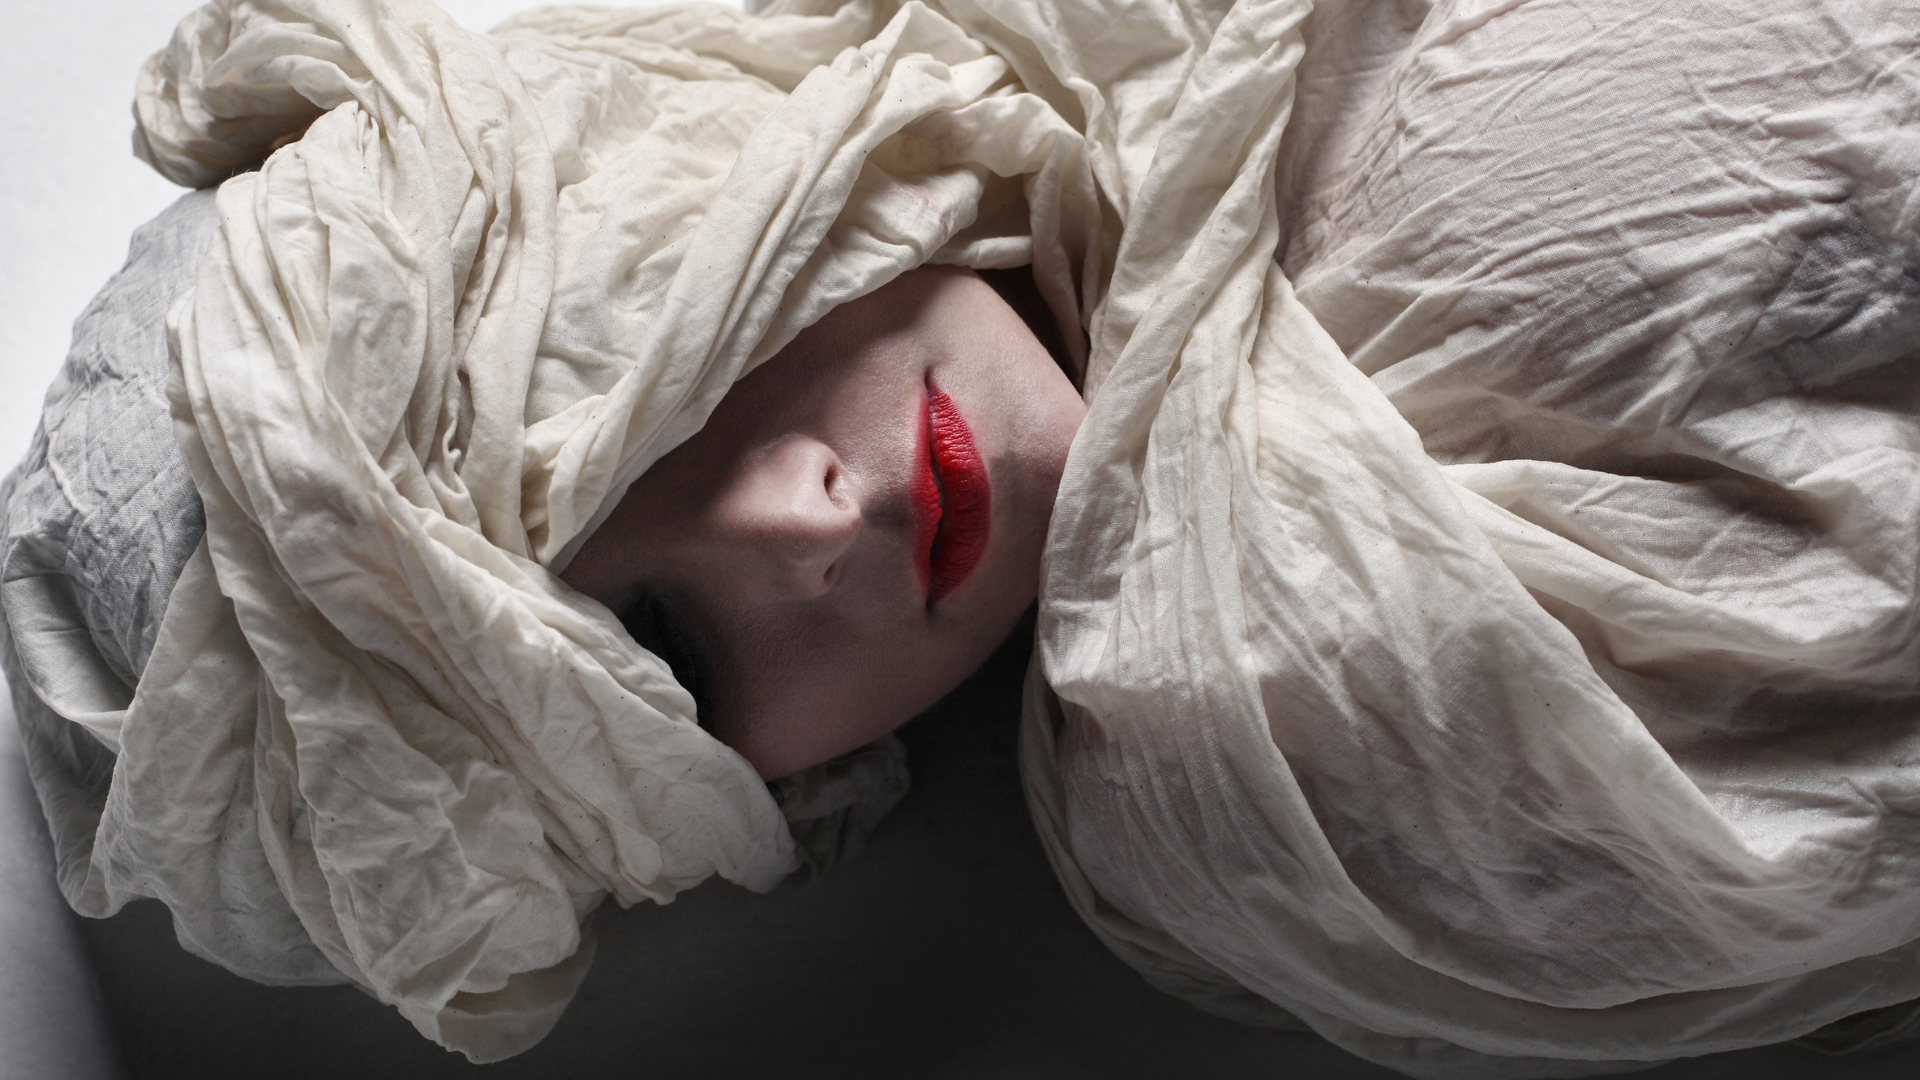 Model wrapped in funeral shroud